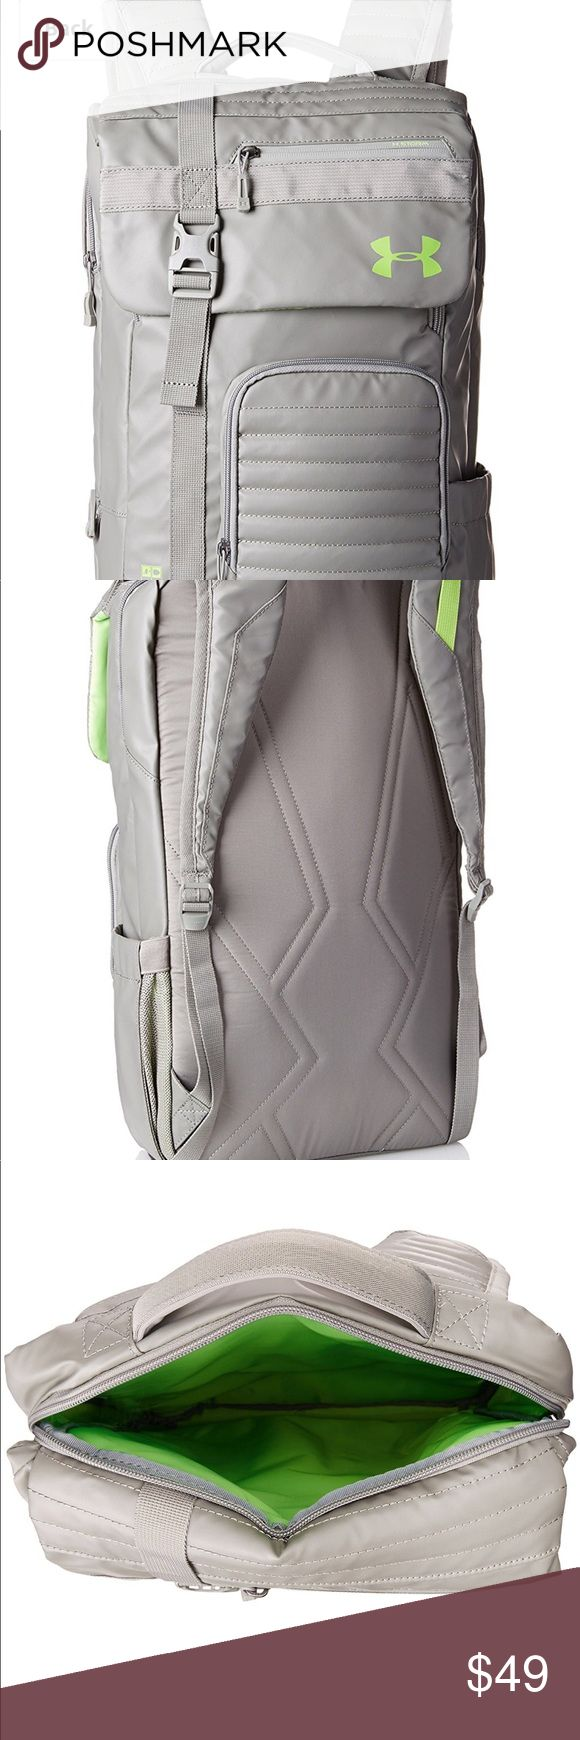 Under armor backpack brand new w/tags,perfect size Secure, wide-mouth, top-entry compartment allows you to easily load & unload. UA Storm gear uses a finish to repel water without sacrificing breathability. Foam reinforced panels help protect your gear. Soft lined laptop sleeve-holds laptop. Adjustable, padded, Heat Gear shoulder straps for total comfort. Ergonomic foam back panel for comfortable wear. PU-coated open pocket on side, ideal for a water bottle. Accessible top front pocket…